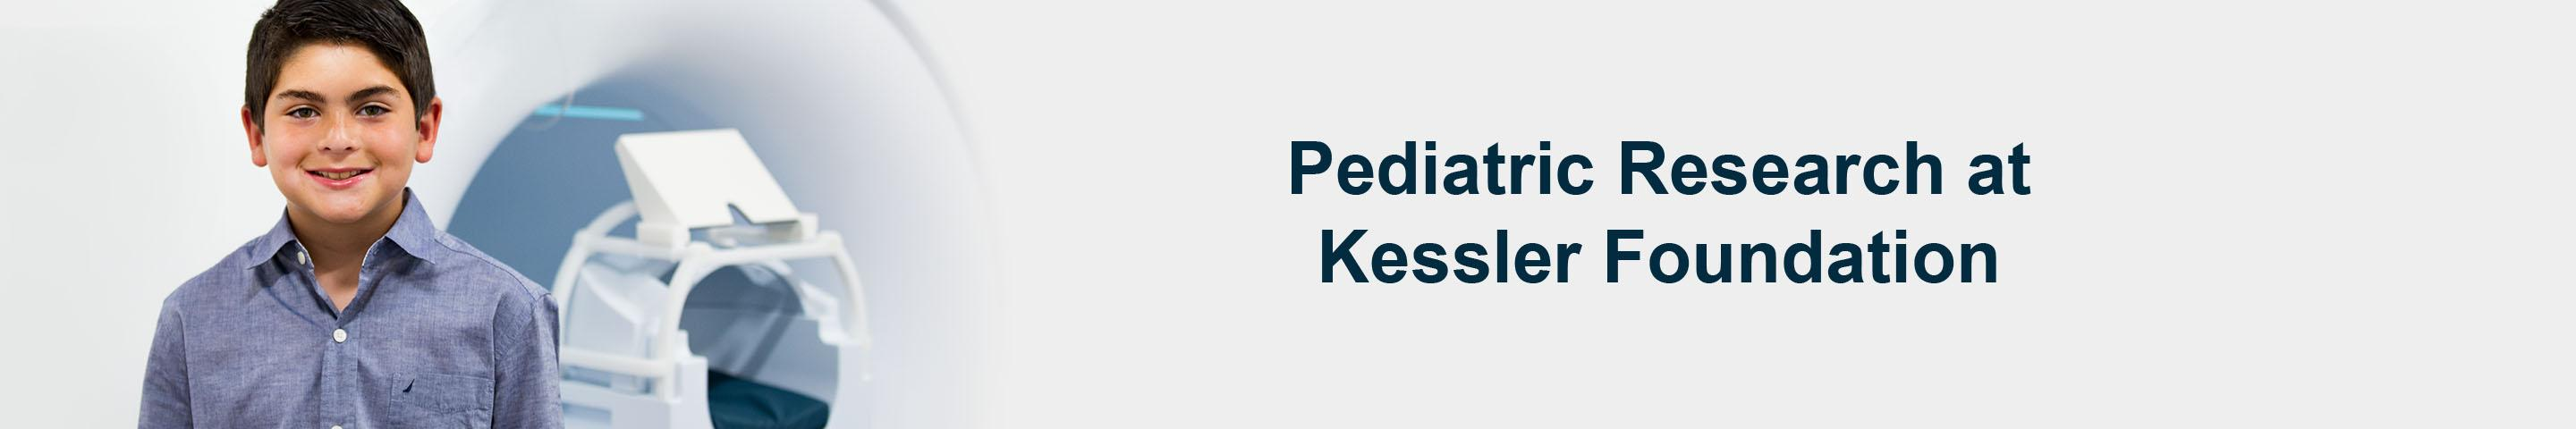 Pediatric Research at Kessler Foundation banner